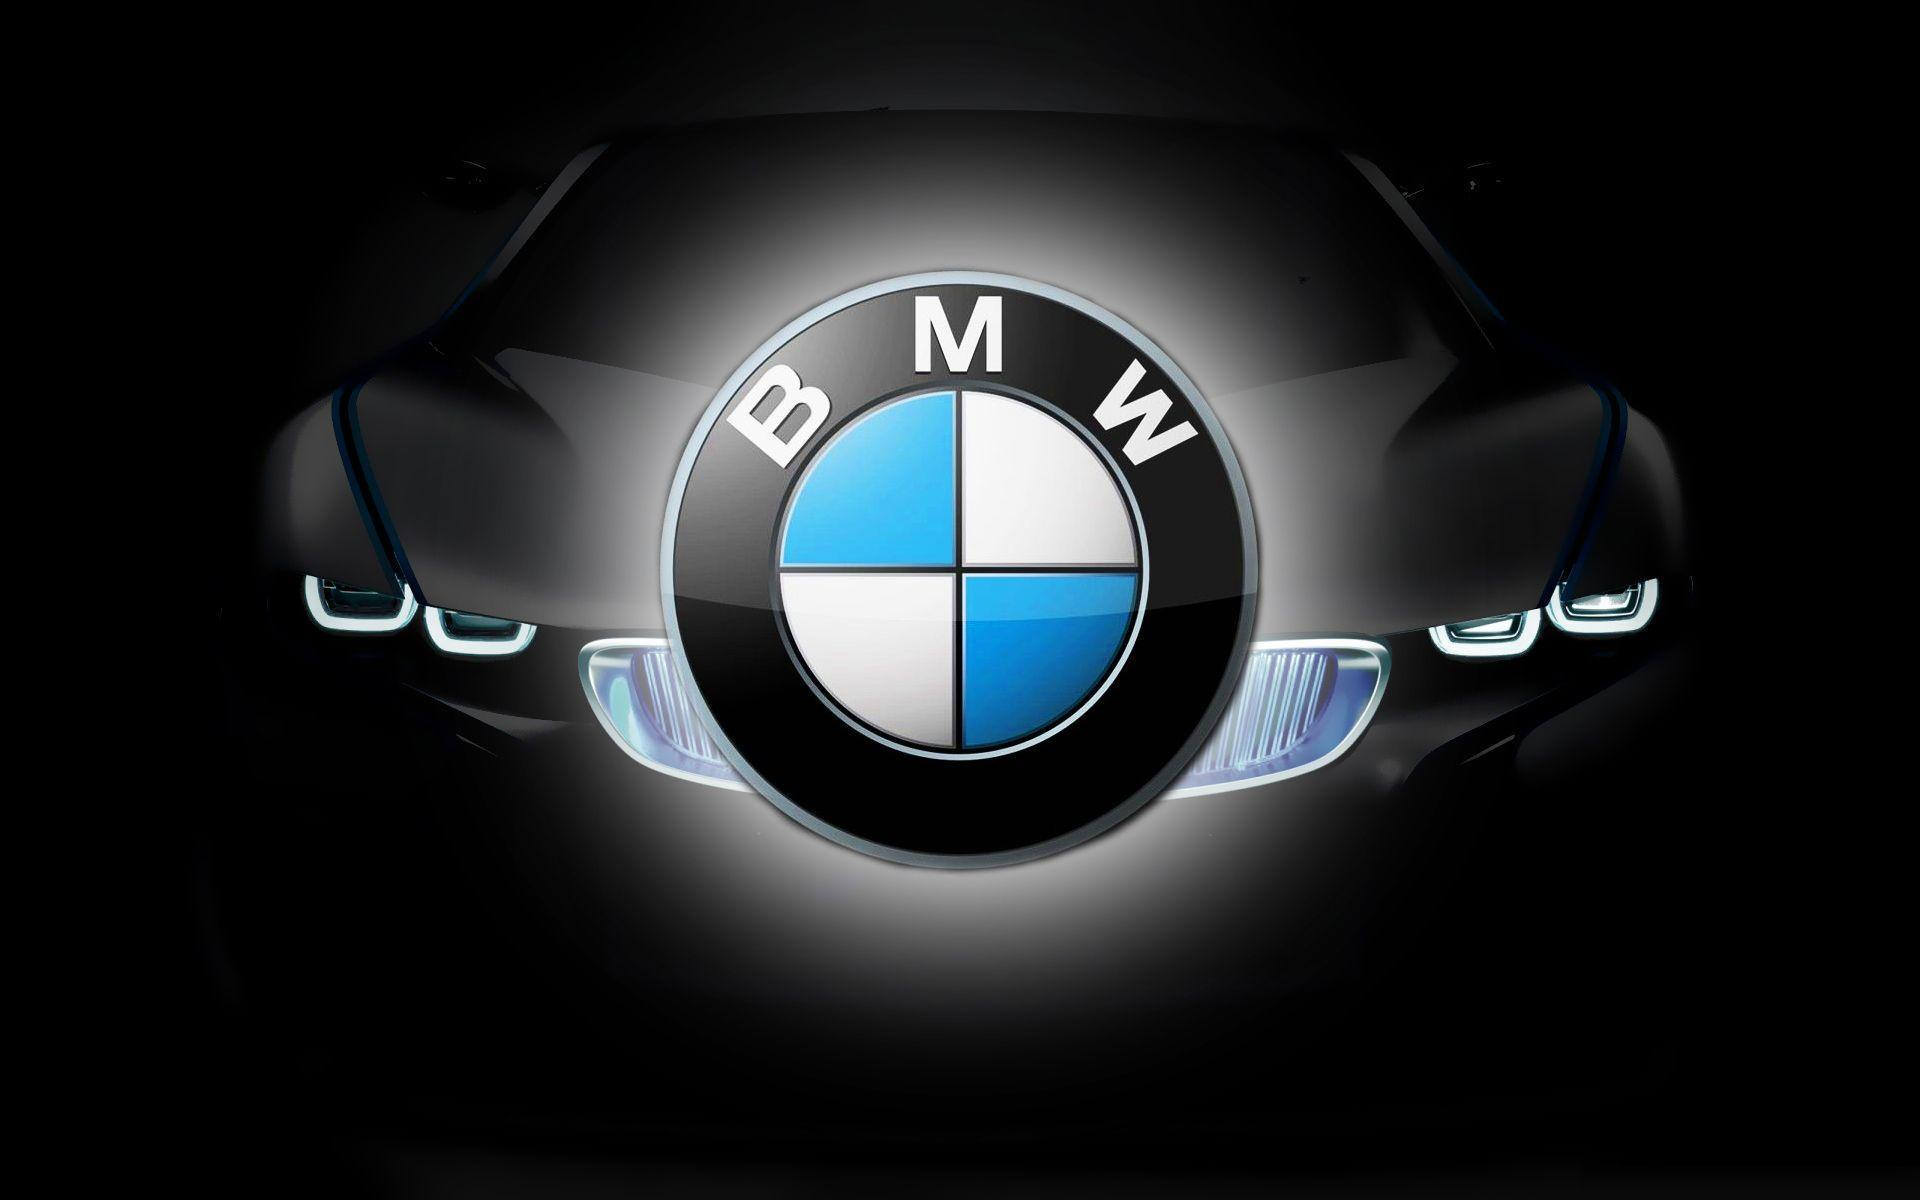 bmw logo wallpapers - wallpaper cave